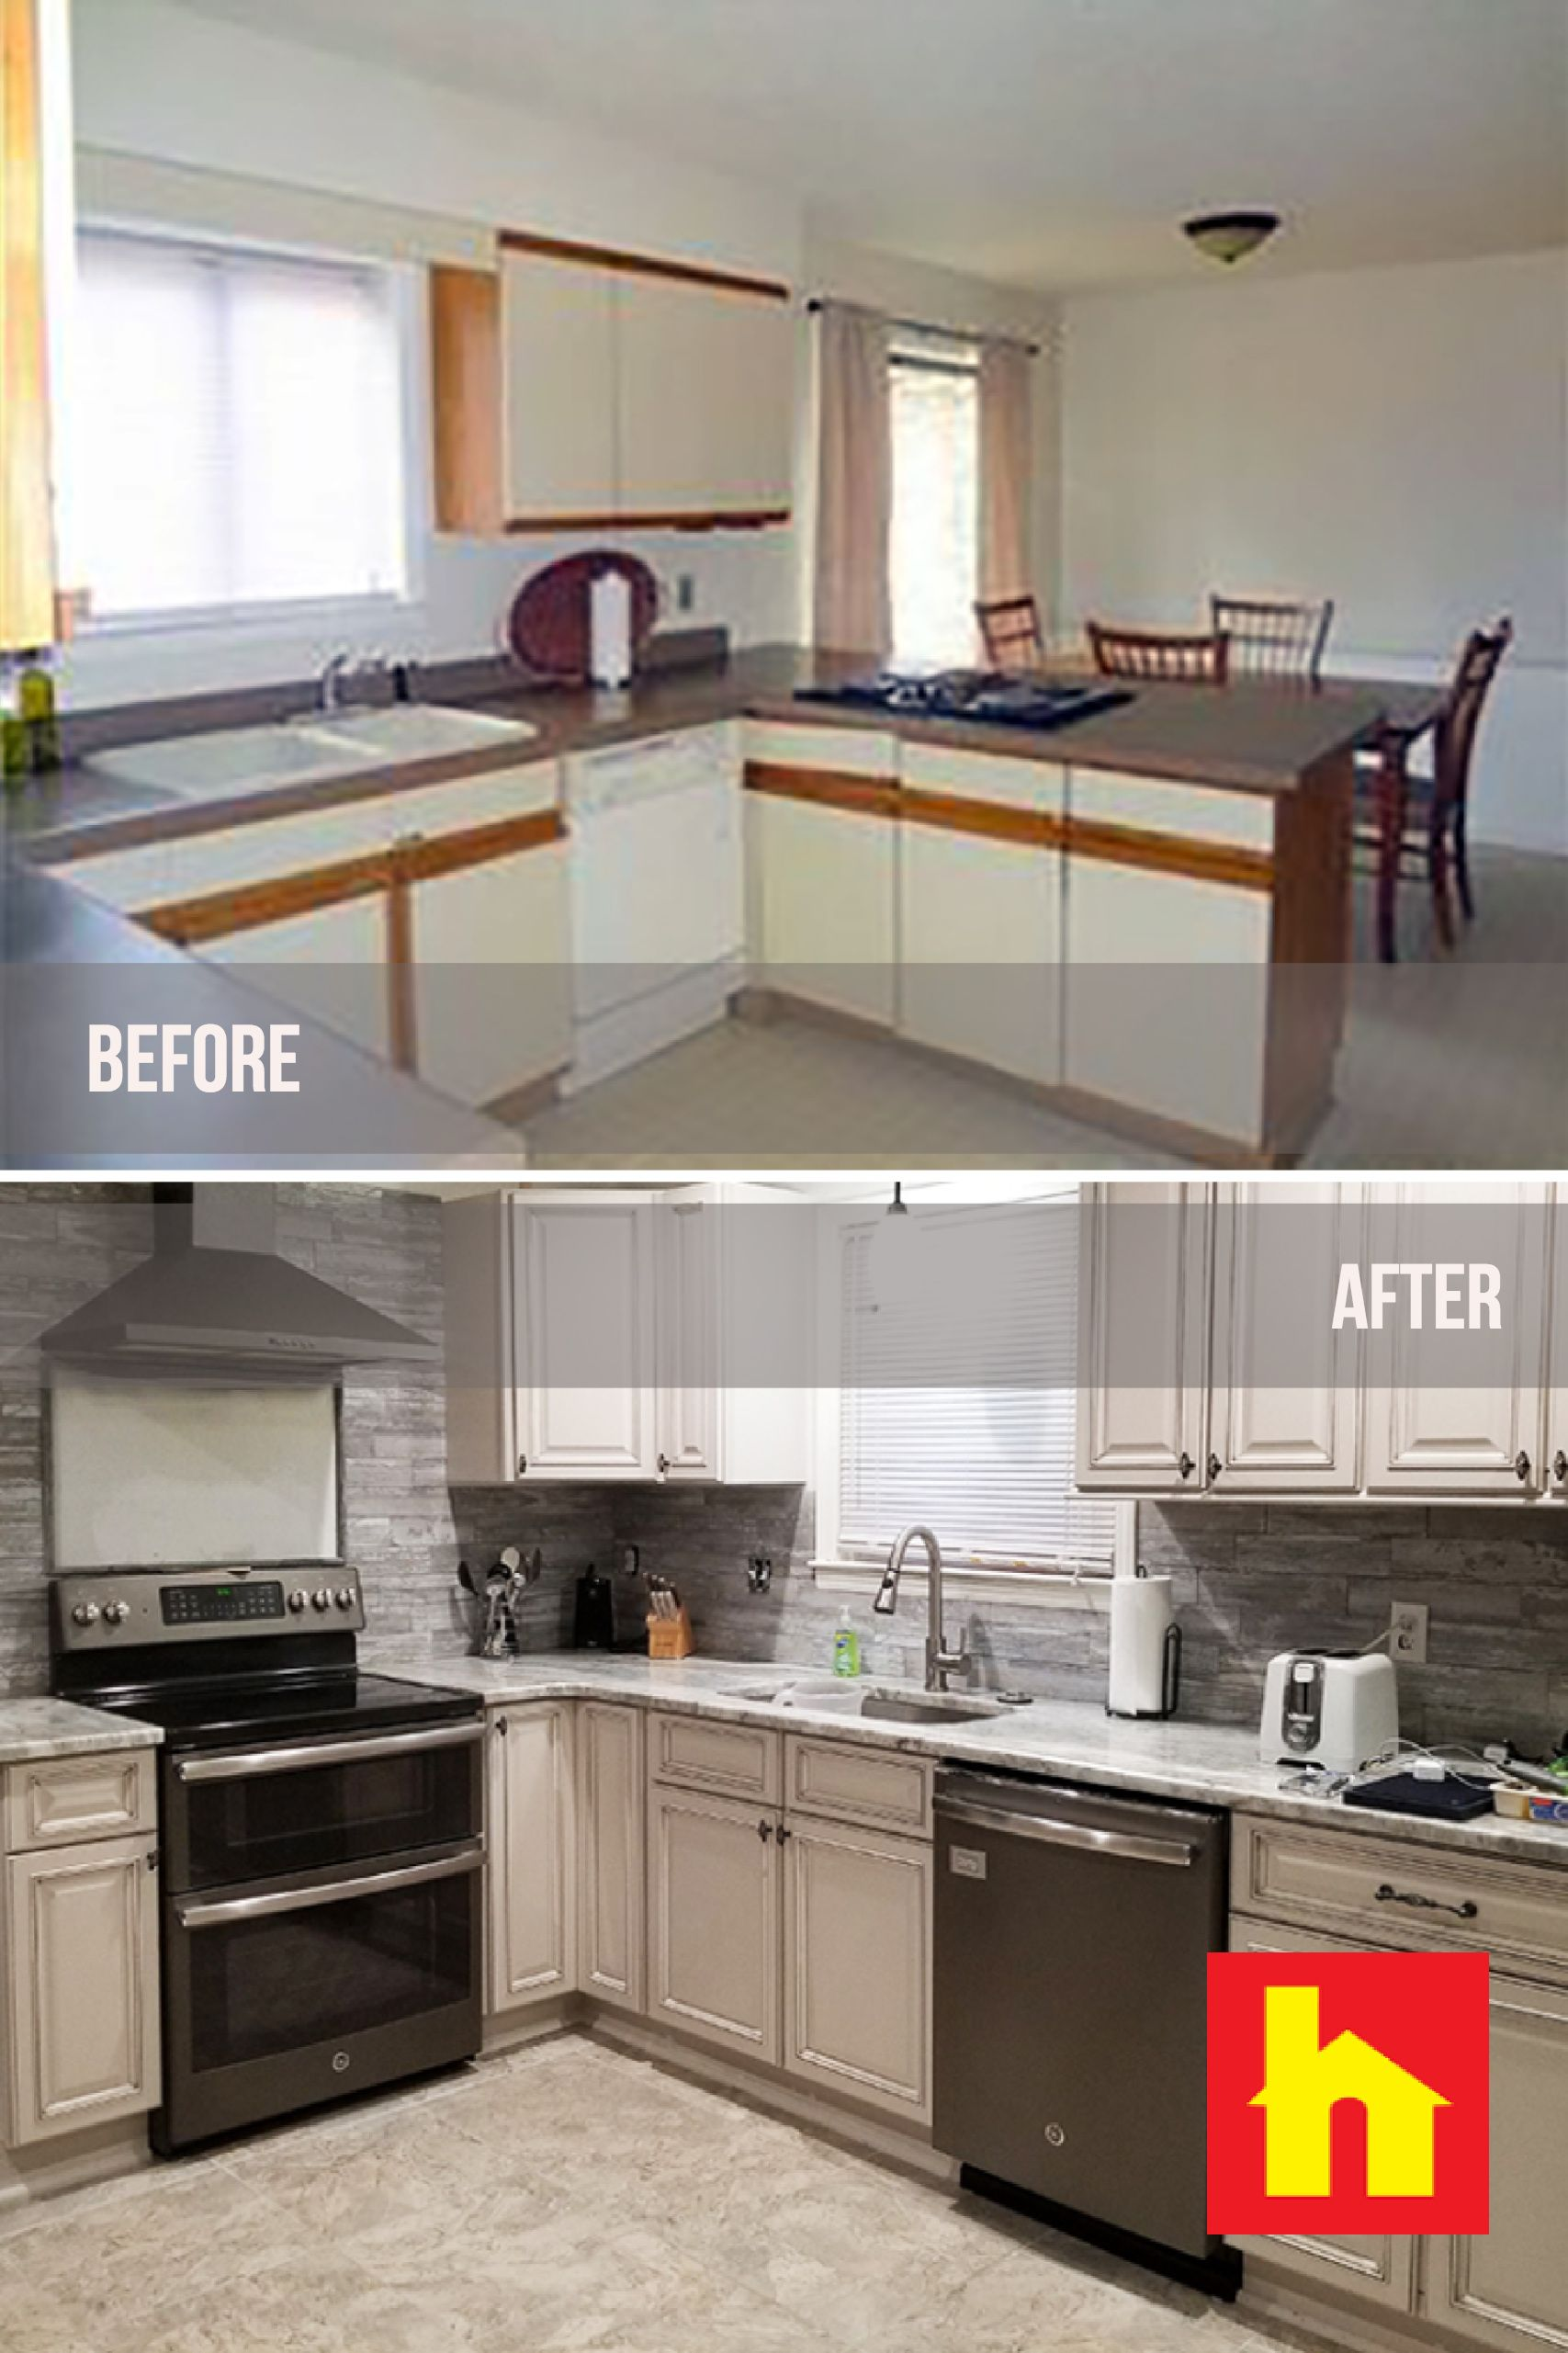 Monthly Photo Contest kitchen remodel entry from Deanna S. in ...